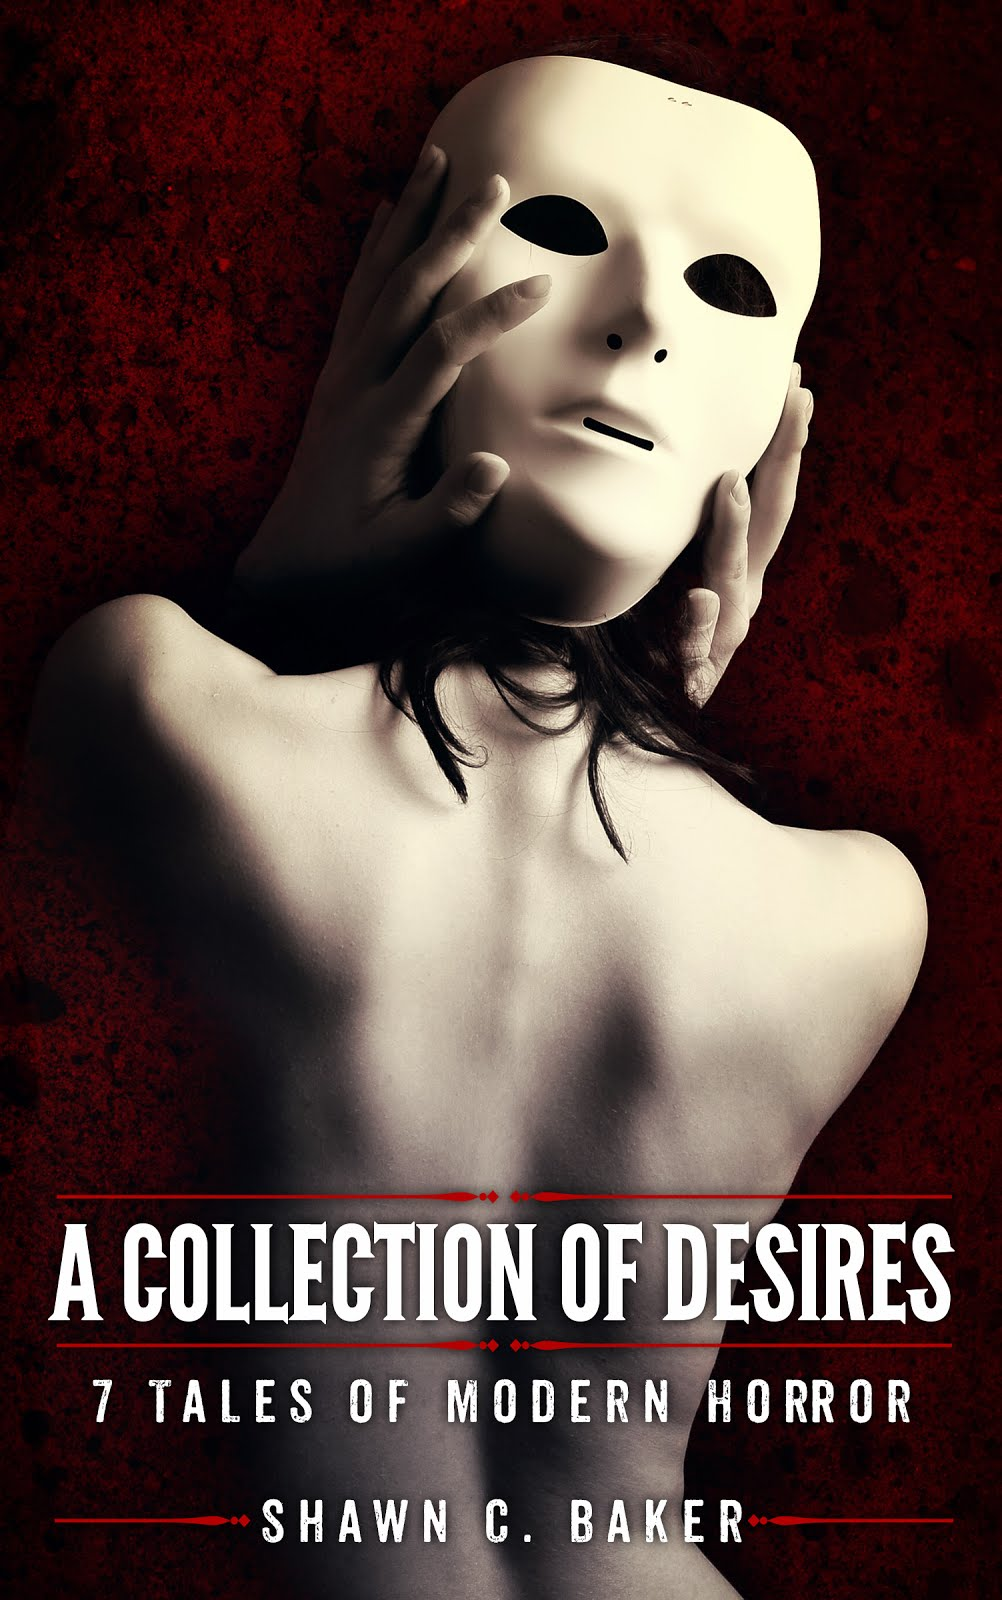 A Collection of Desires: 7 Tales of Modern Horror